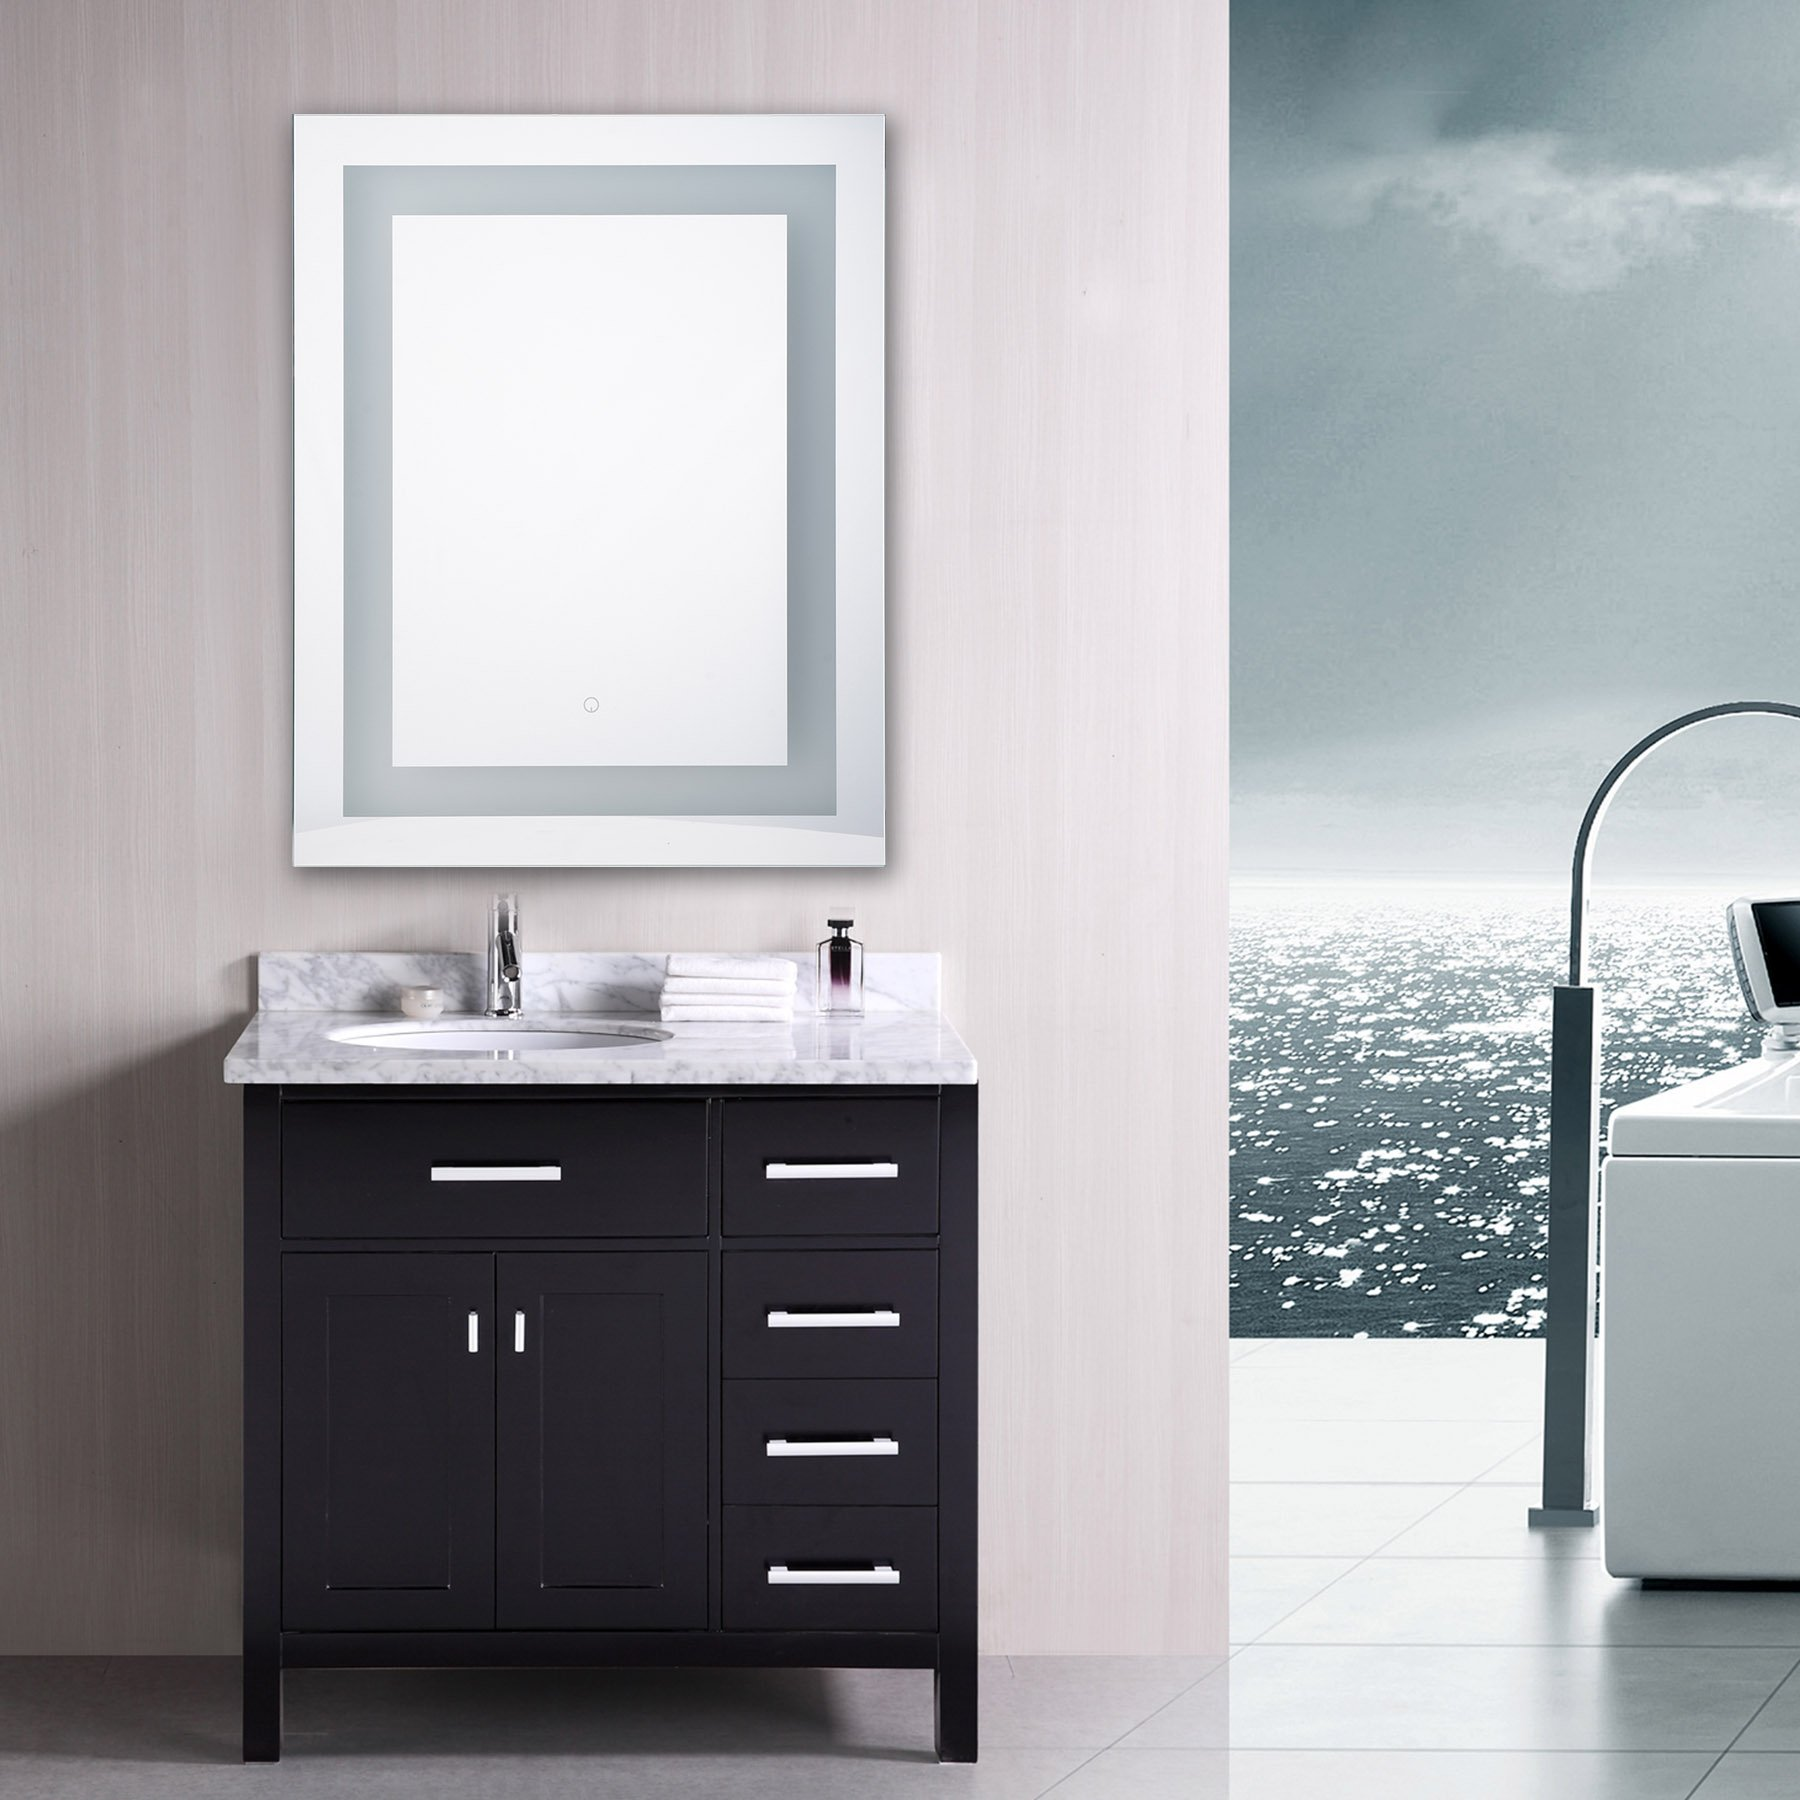 """CO-Z Dimmable LED Bathroom Wall Mirror Light, Lighted Vanity Mirror for Make Up, Wall Mounted (24"""" x 30"""") by CO-Z (Image #2)"""